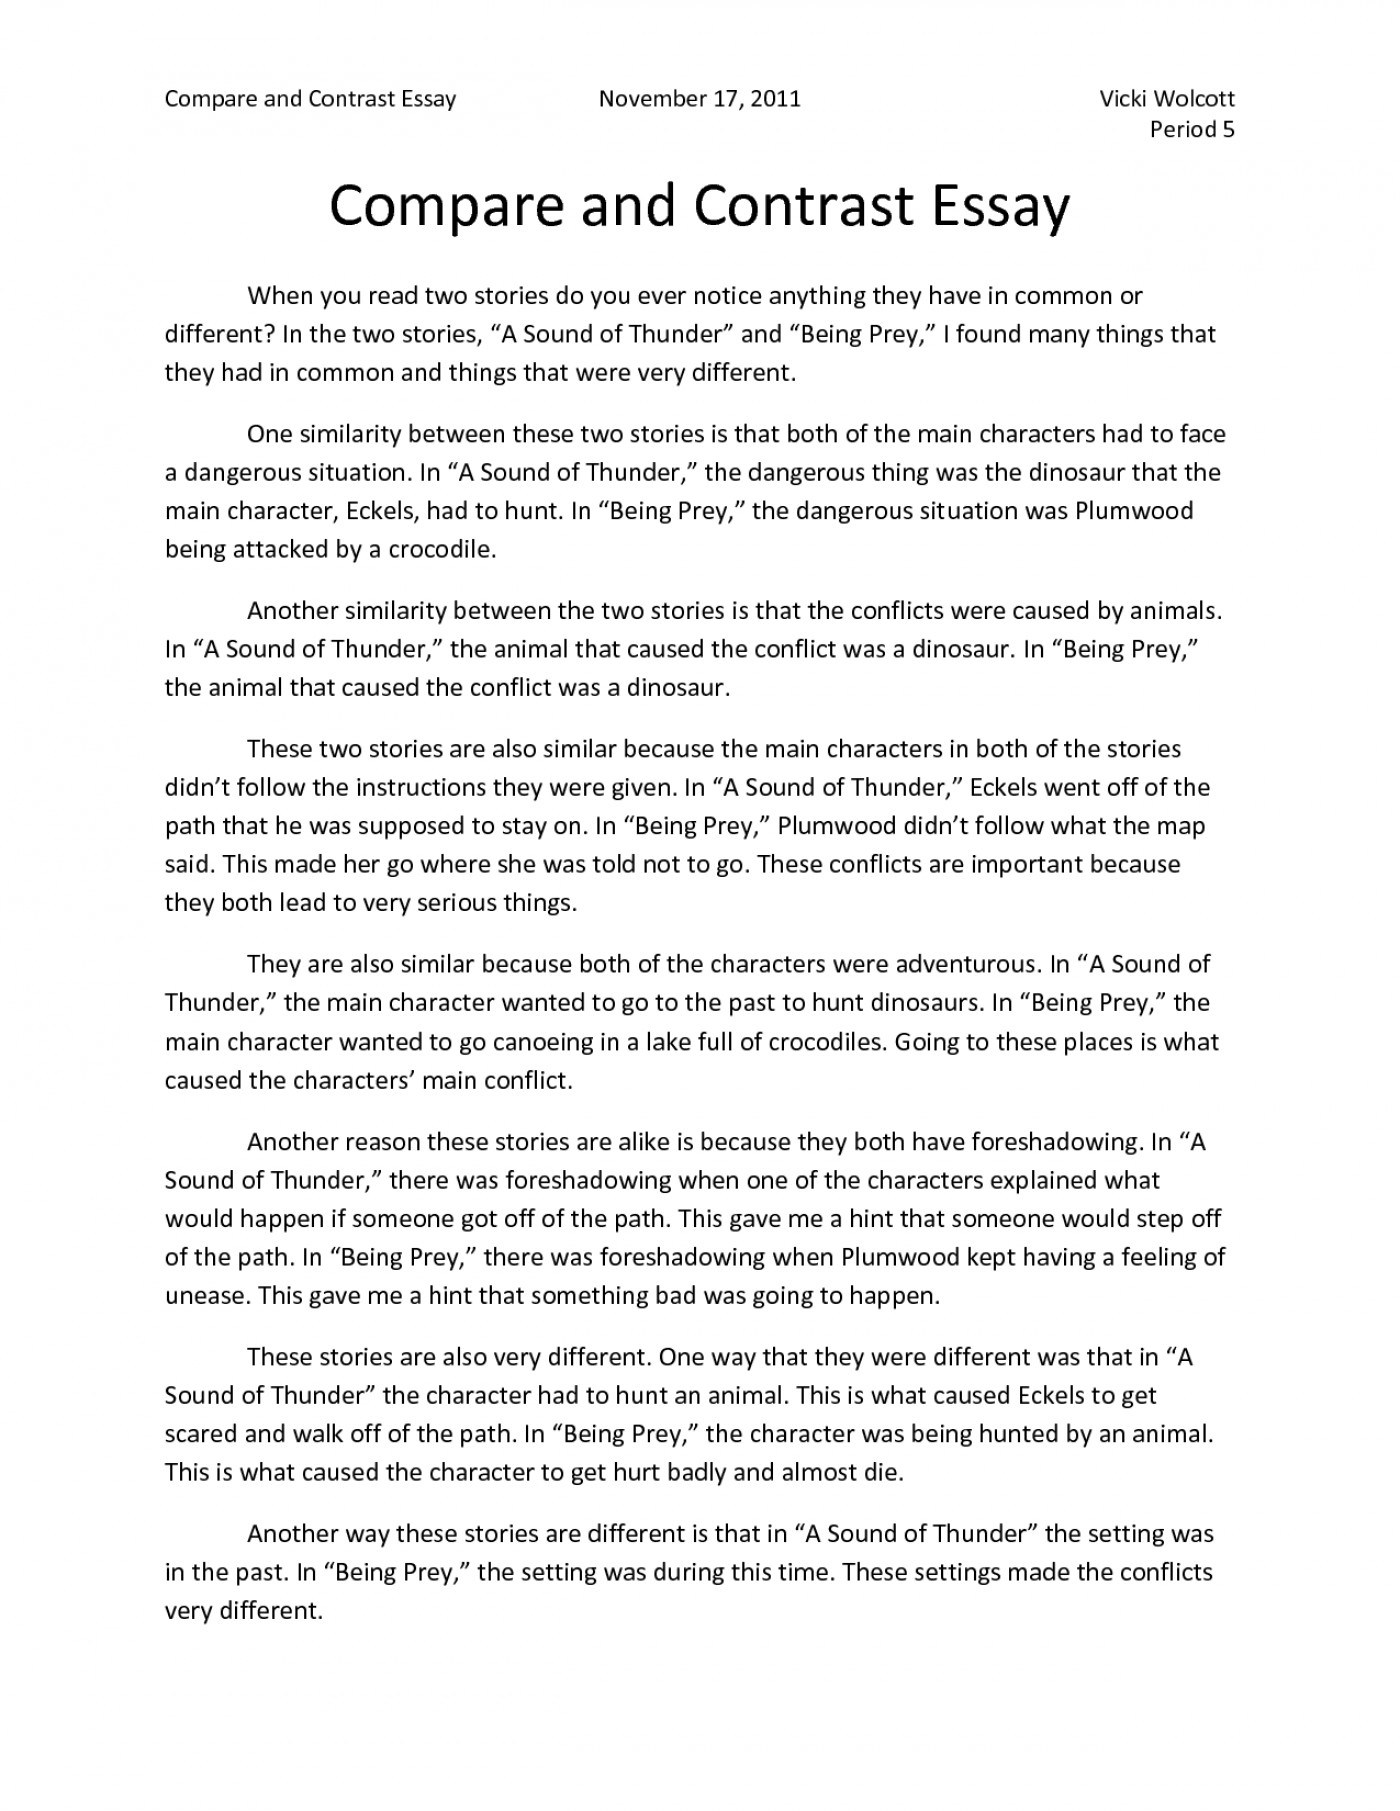 003 Perfect Essays Compare And Contrast Essay Introduction Example How To Write College Striking Examples Elementary Fourth Grade For Students 1400